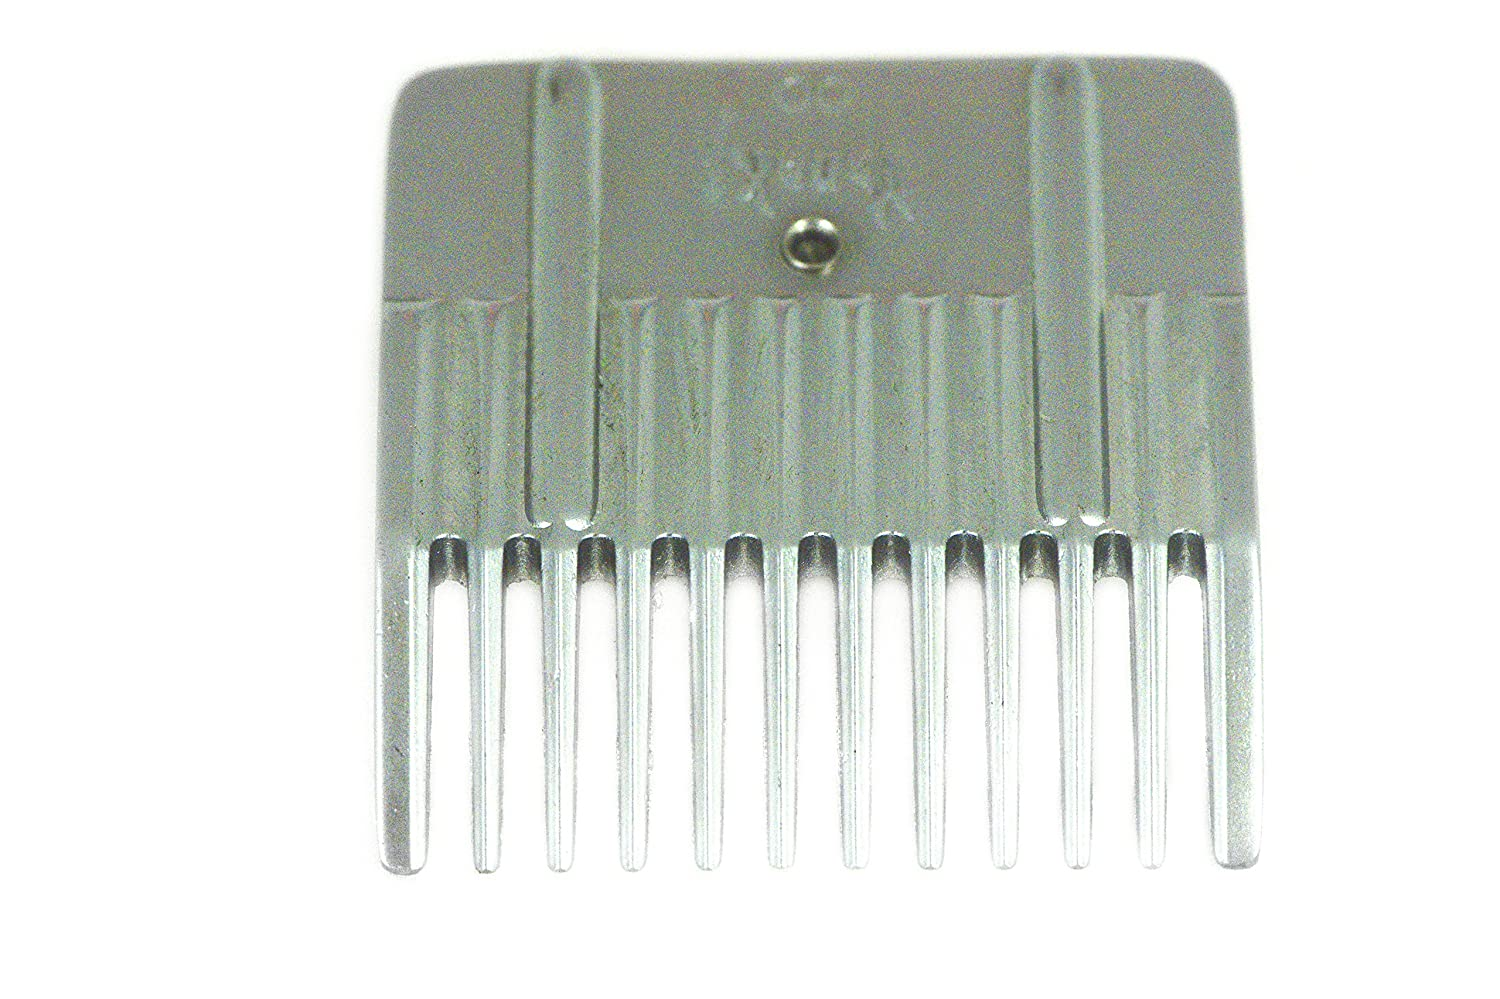 Yanaki Universal Comb Attachment for Hair Clippers - Metal Guide 1/16